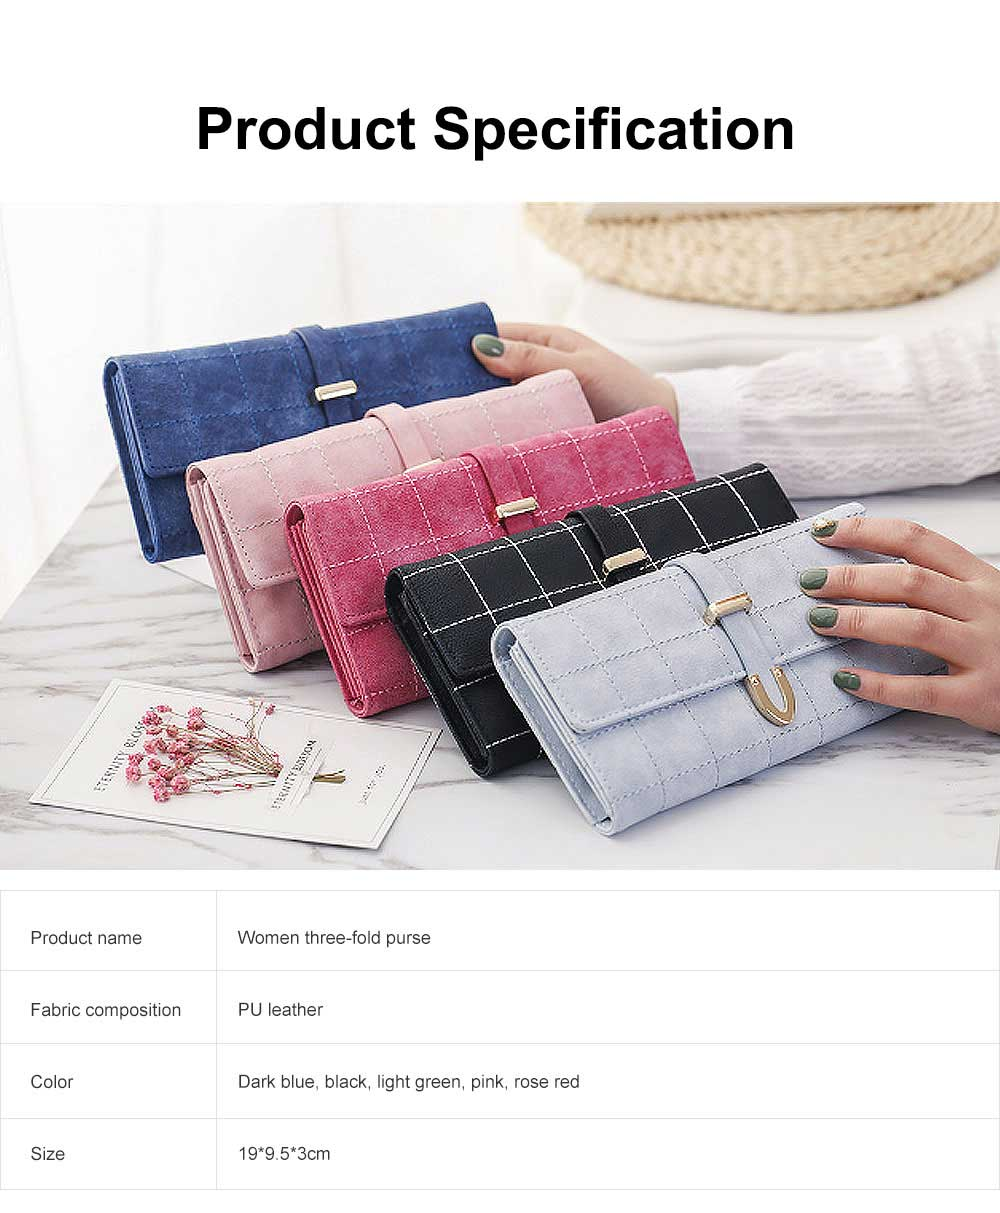 Multi-function Soft Women Purse with Buckle, Fashion Ladies Casual Clutch Bag, Frosted Three-fold Long Purse for Women Girl Lady 5